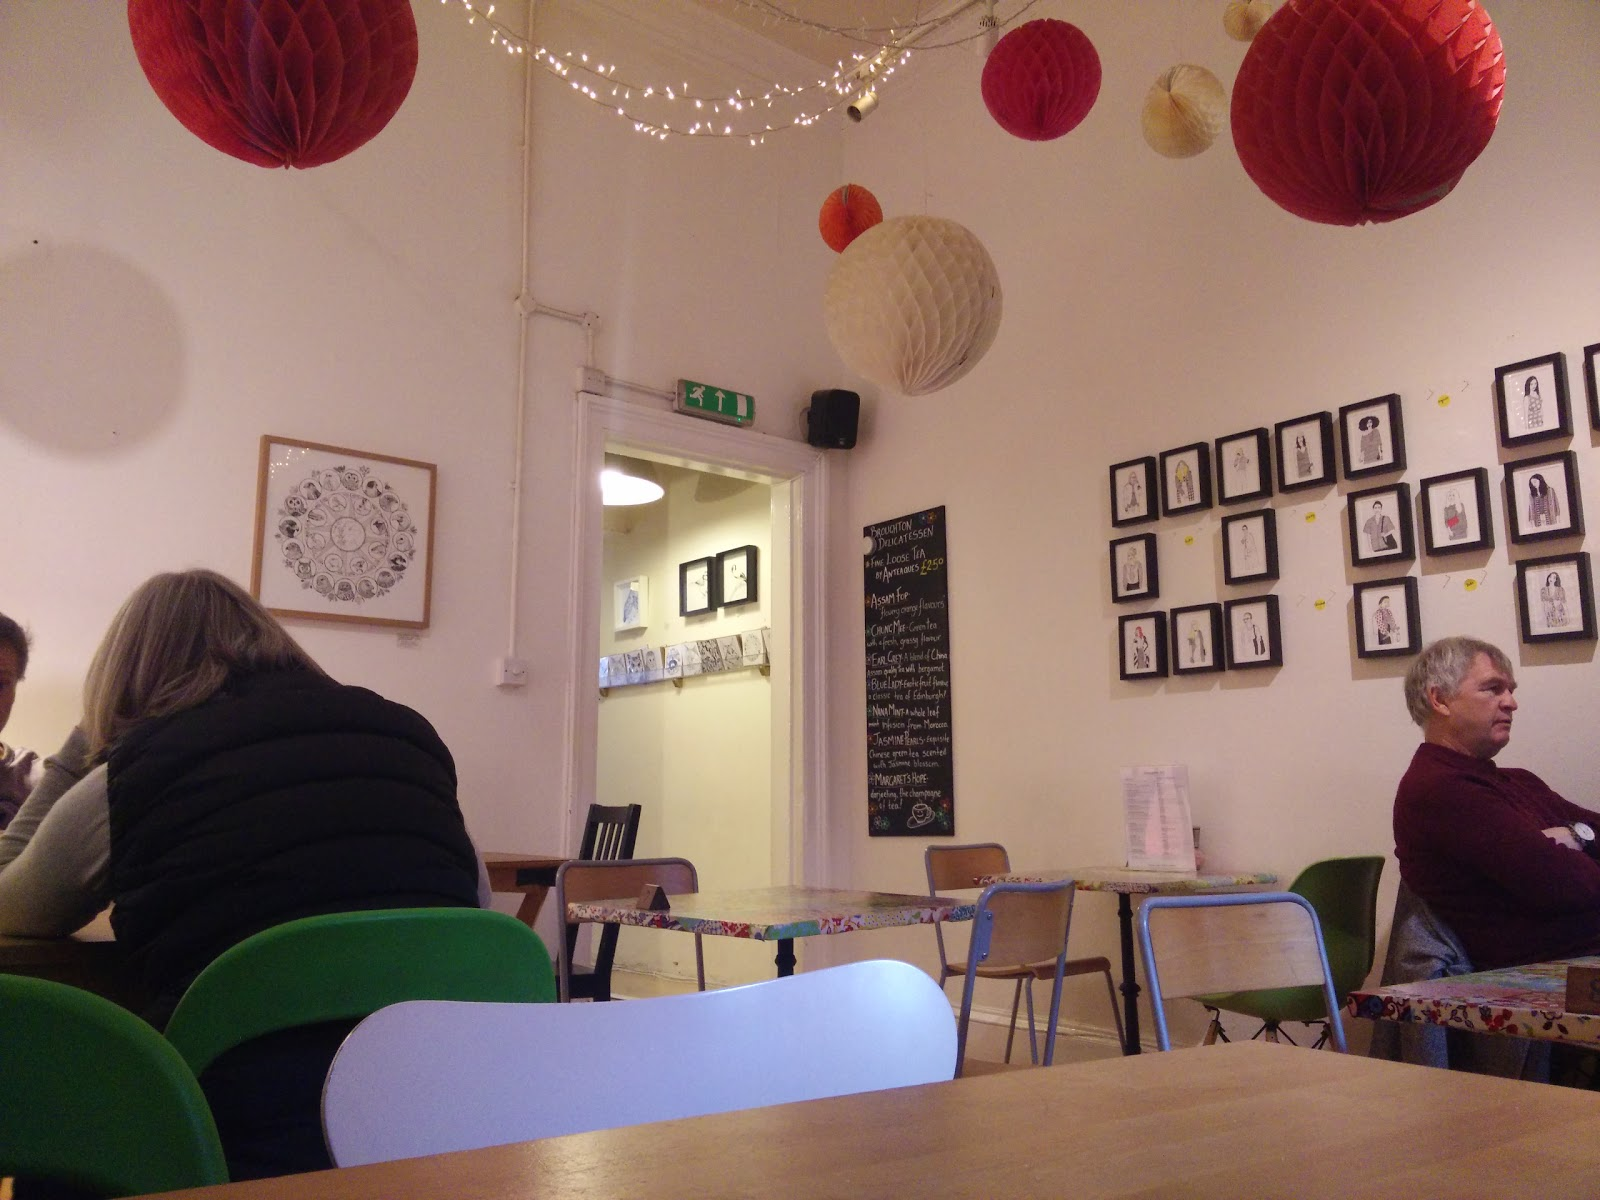 Broughton Delicatessen: A Work-Friendly Place in Edinburgh